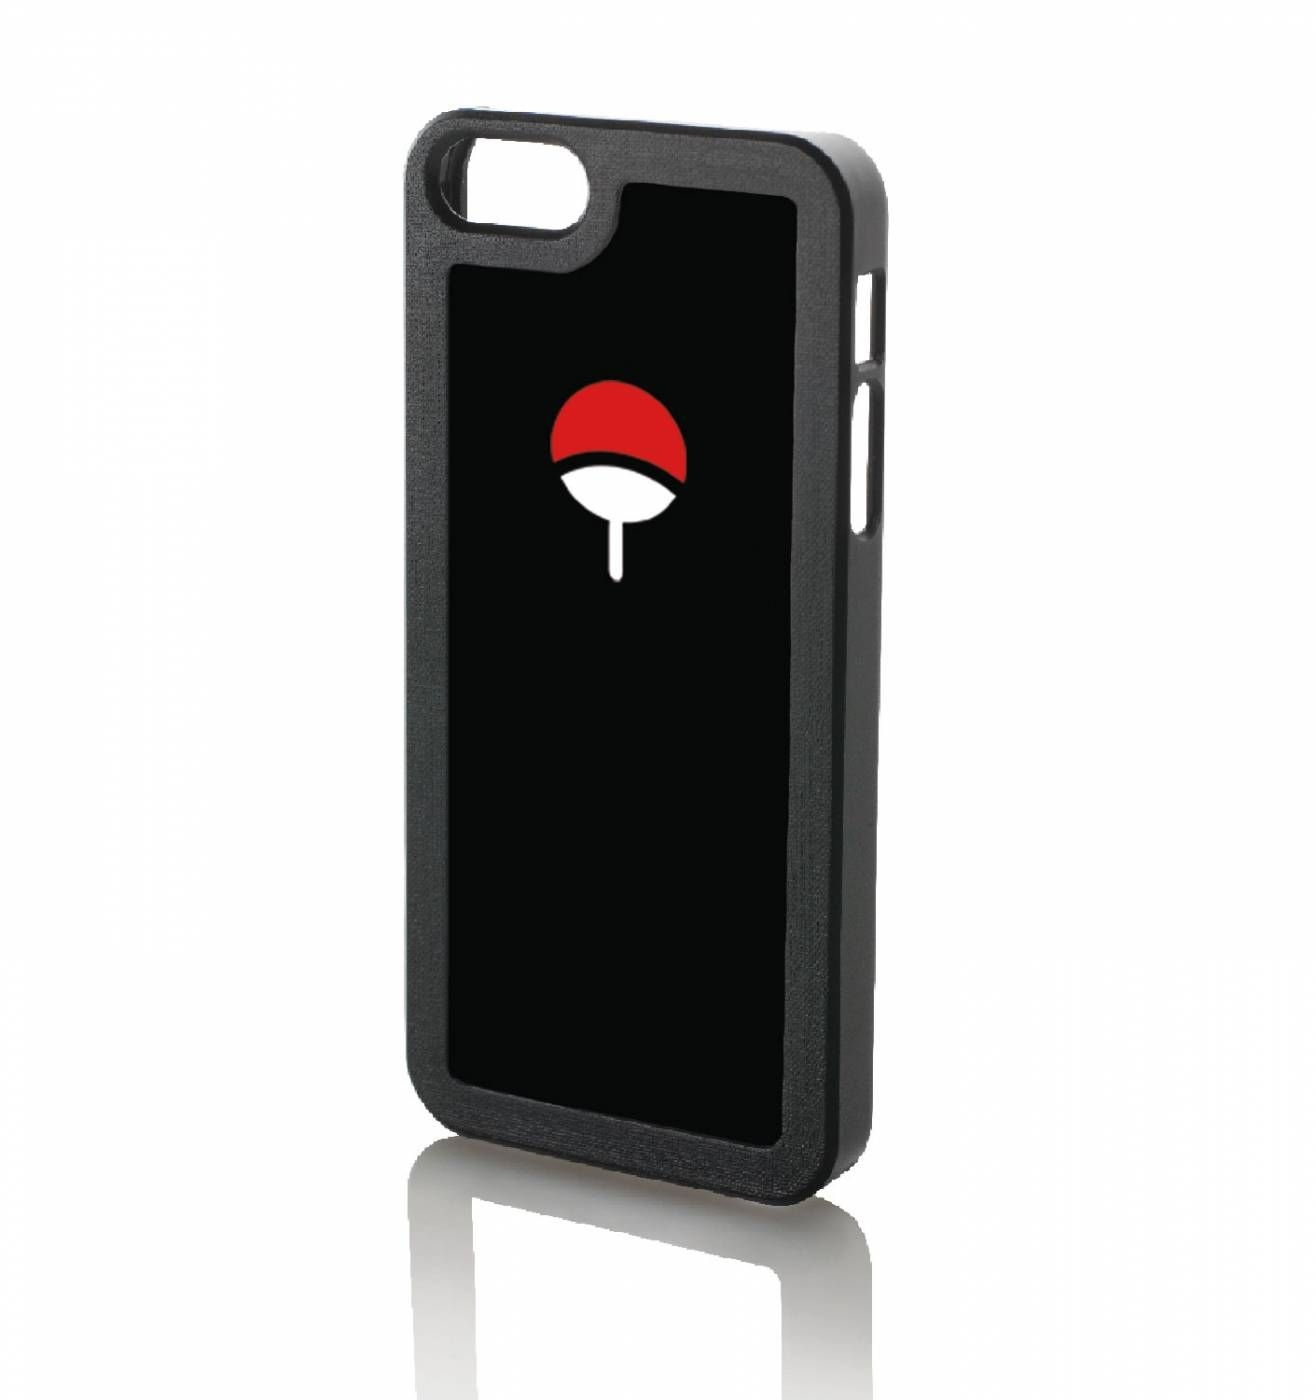 Uchiha Family Crest (BLACK) - Apple iPhone 5 Phone case